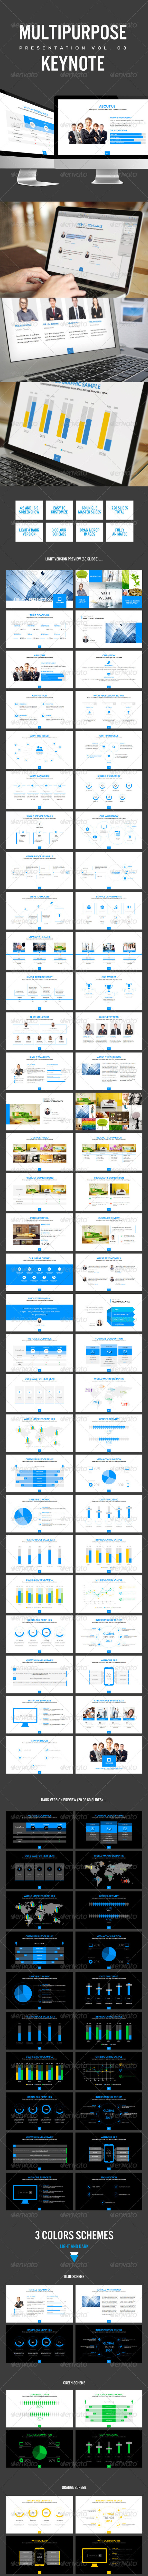 GraphicRiver Multipurpose Keynote Presentation Vol 03 6995761